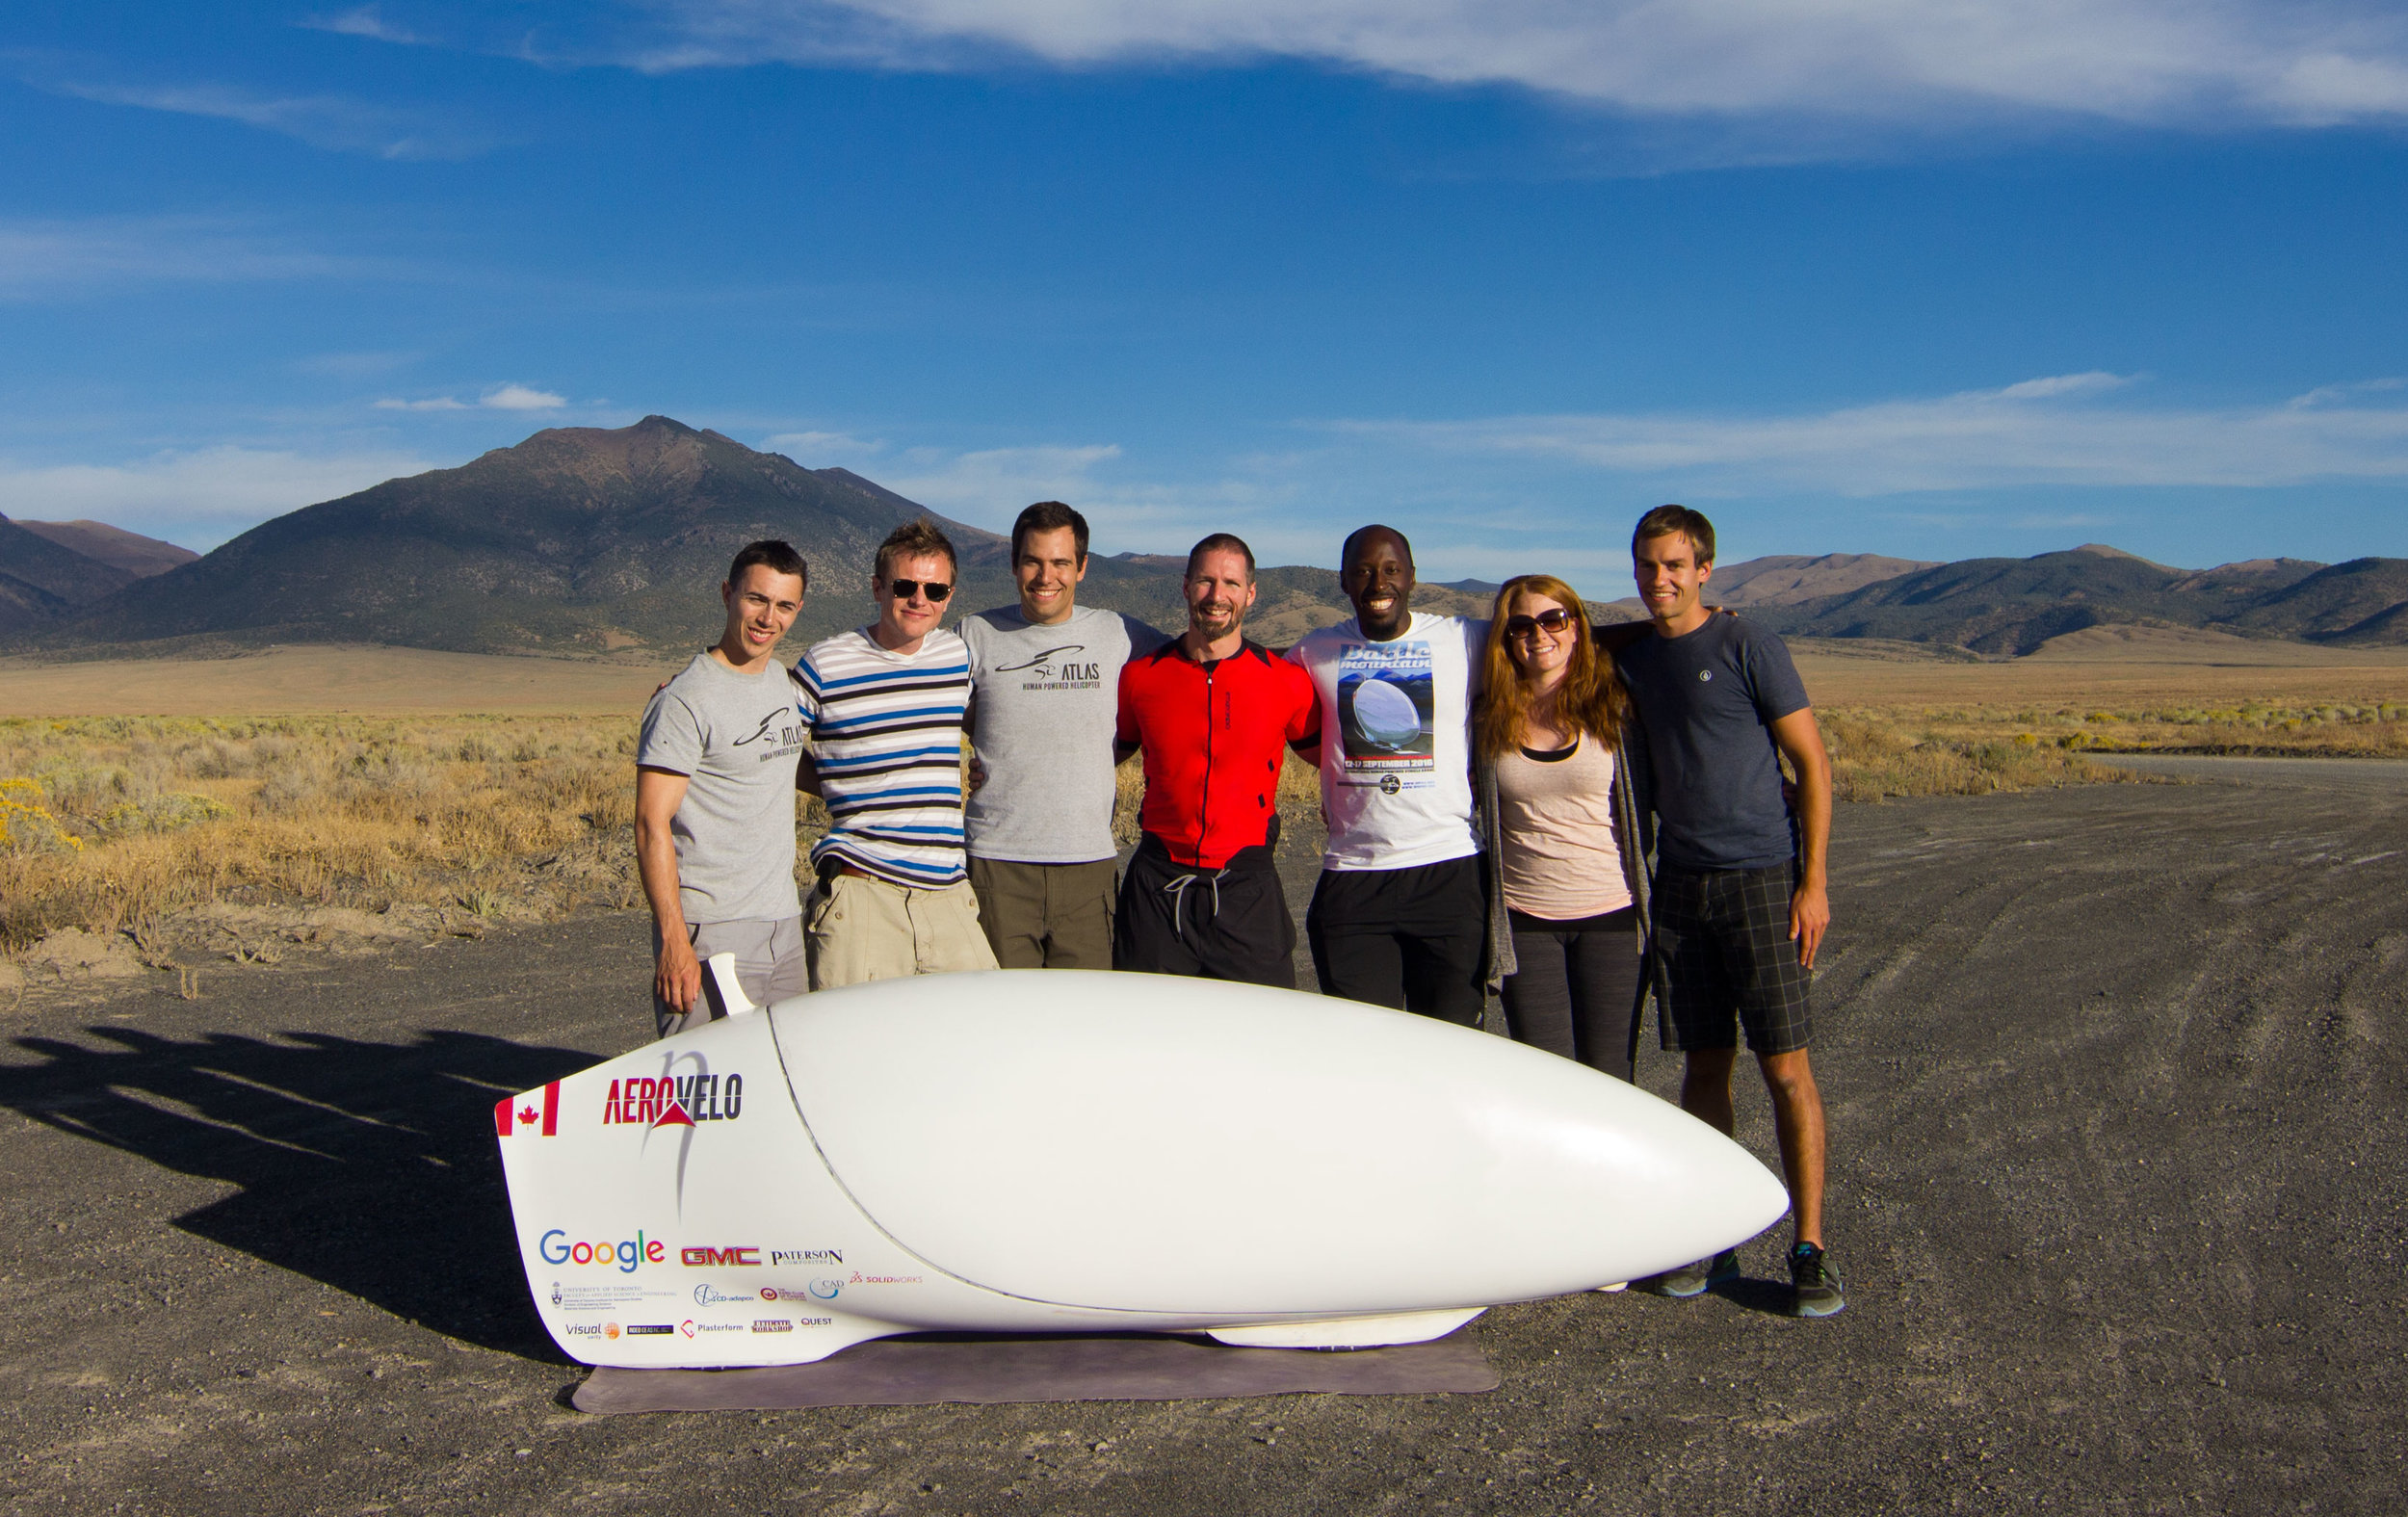 The Aerovelo team gathered together once more, this time coming from various parts of the U.S.A. and Canada. From left: Trefor Evans, Tomek Bartczak, Cameron Robertson, Todd Reichert, Mike Kiiru, Jenny Reichert, and Alex Selwa.